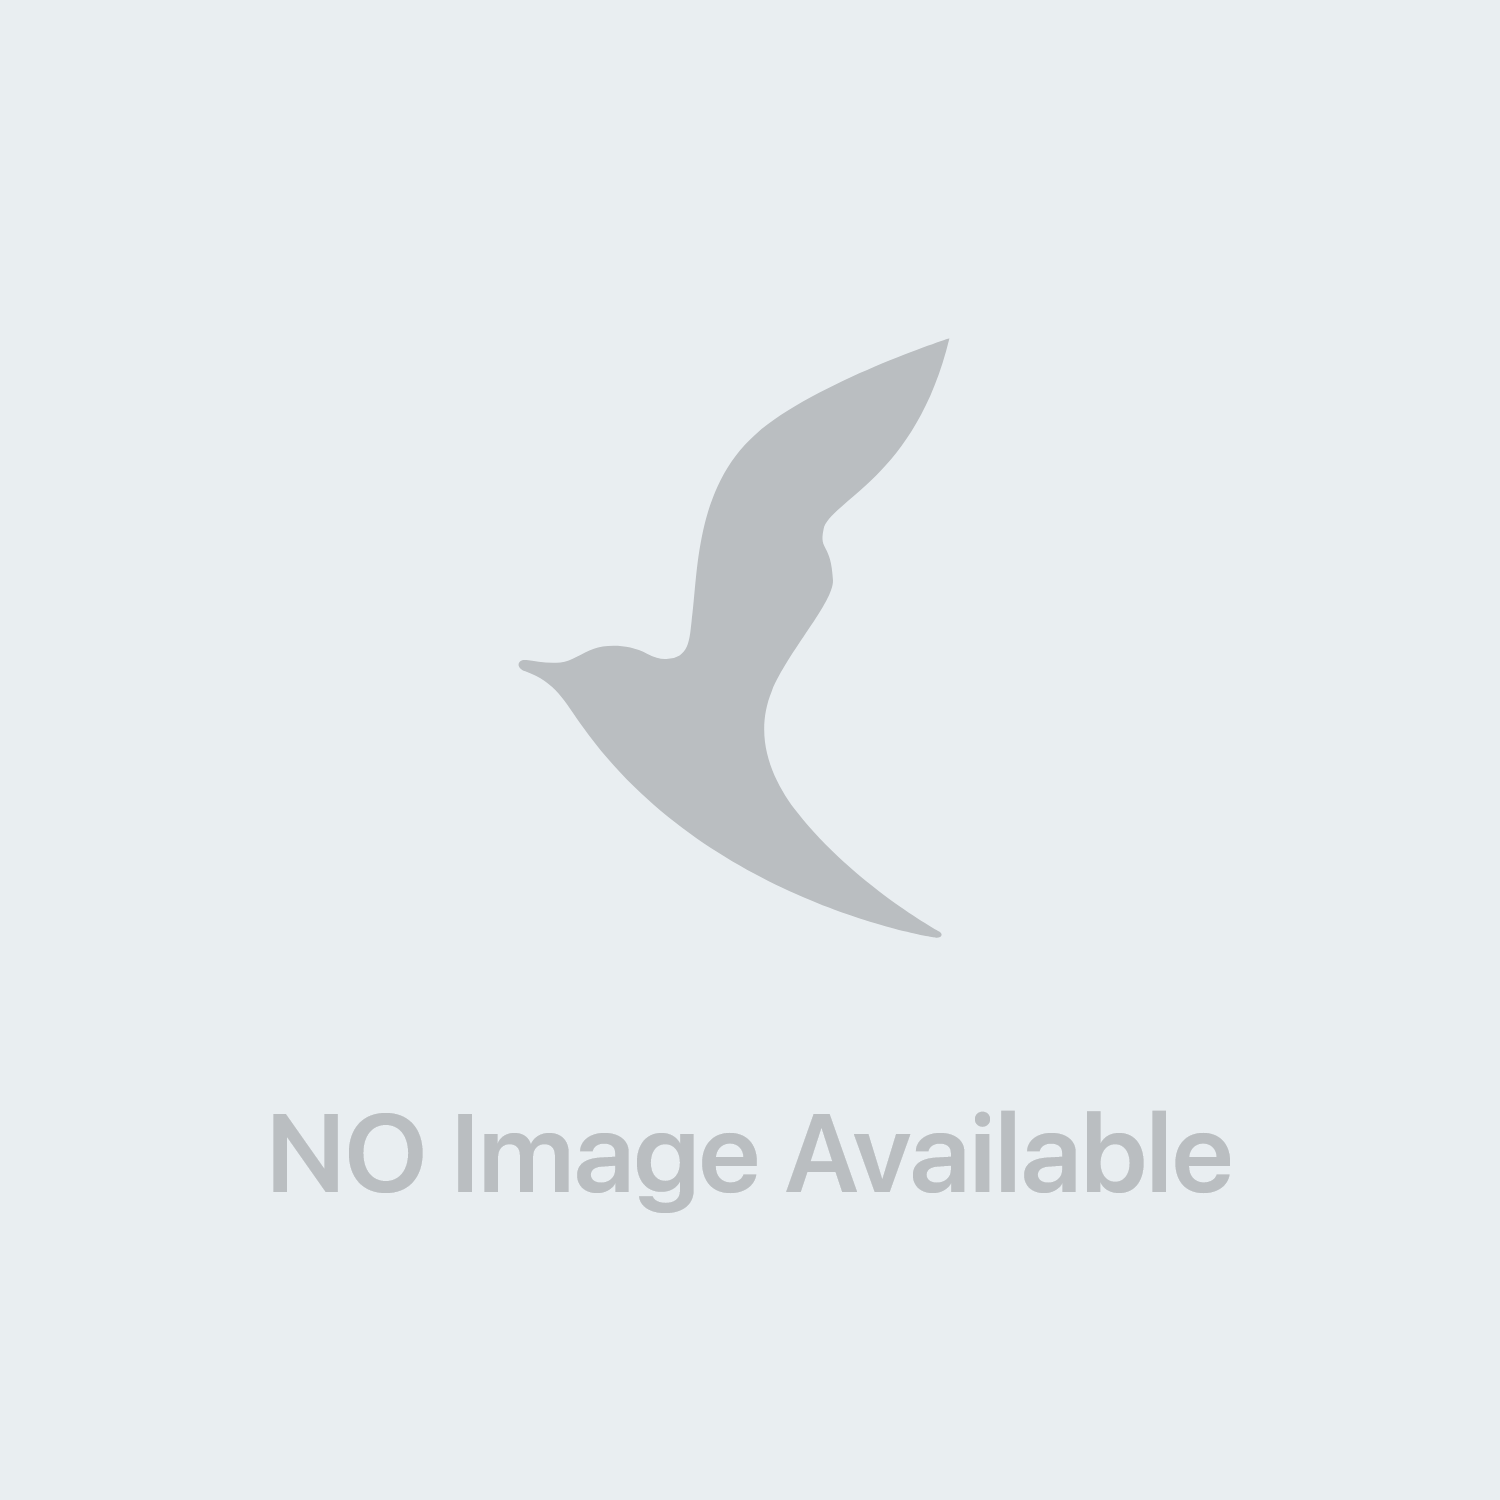 Chicco Tazza Soft Verde 6m+ 200 ml